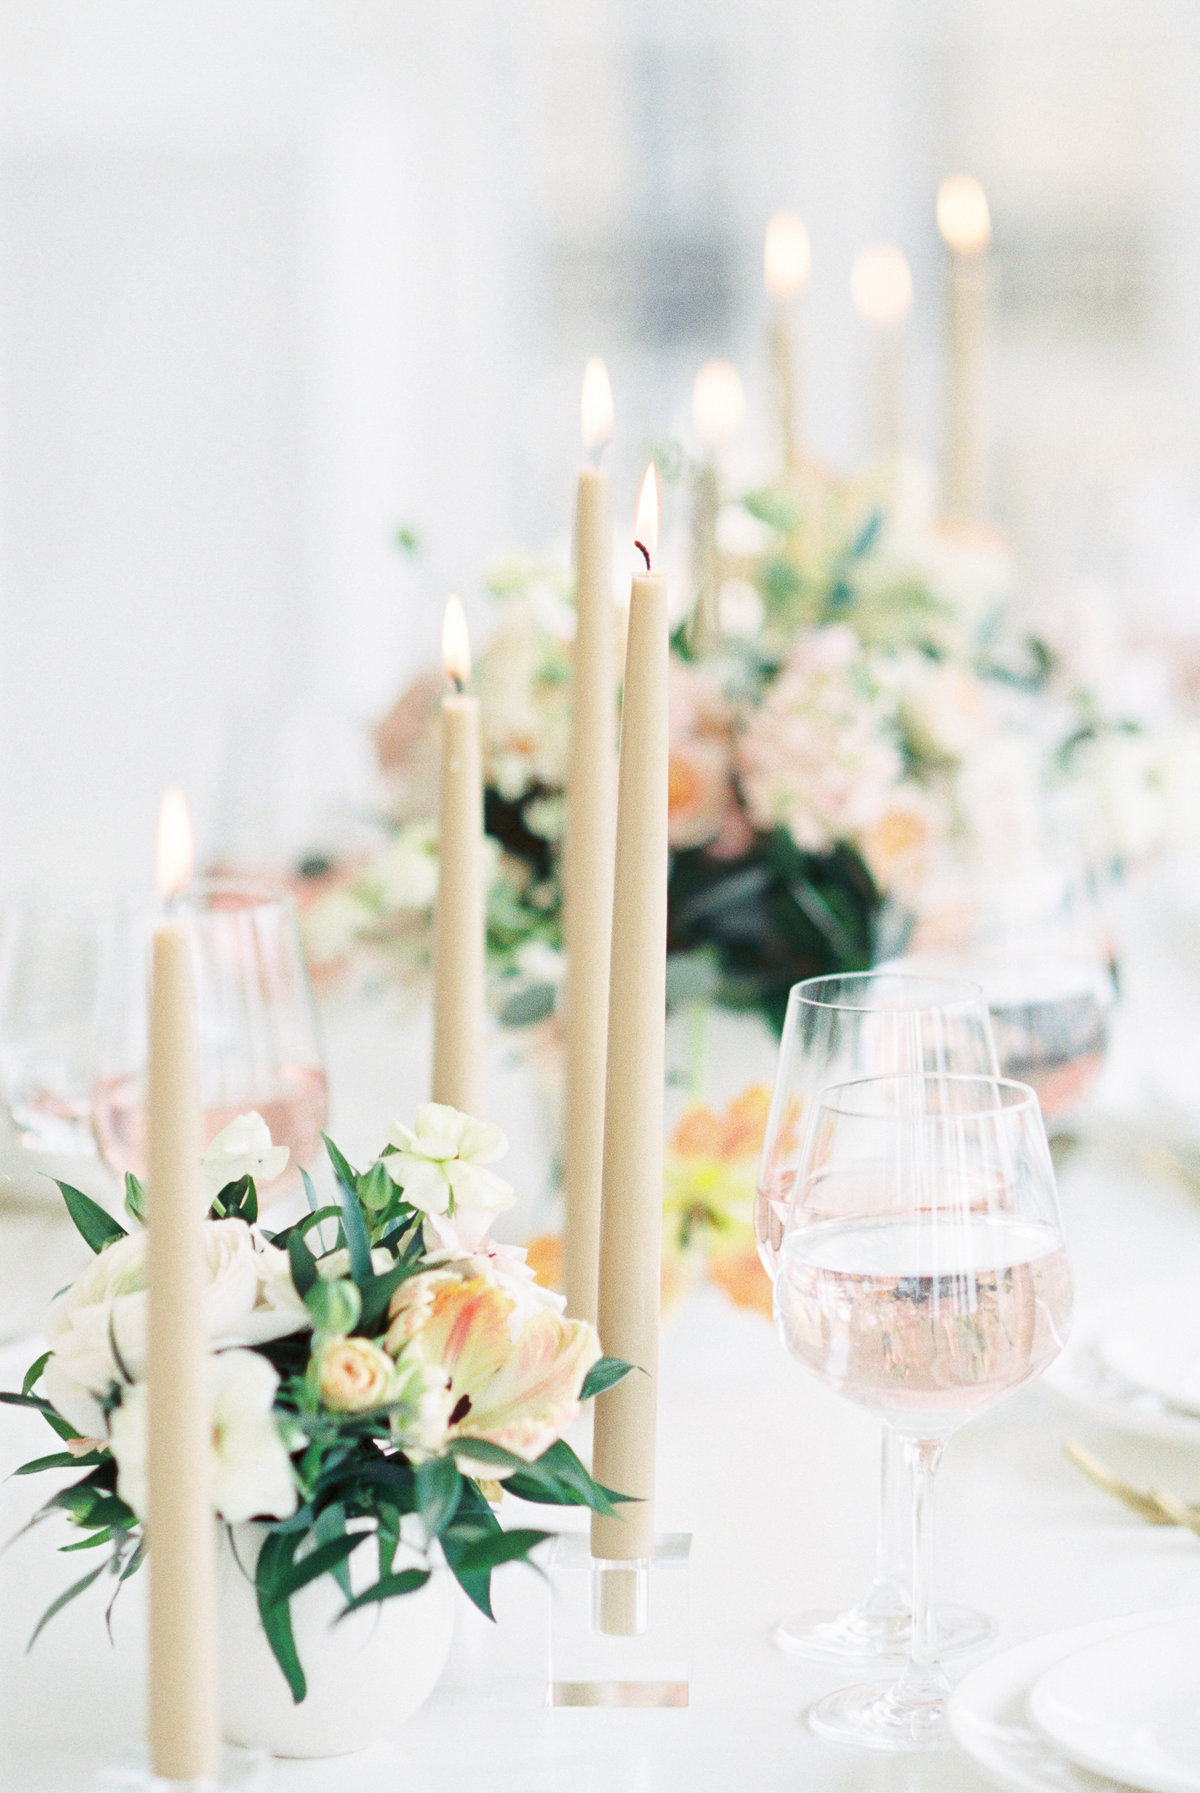 Tablescape of a wedding reception table